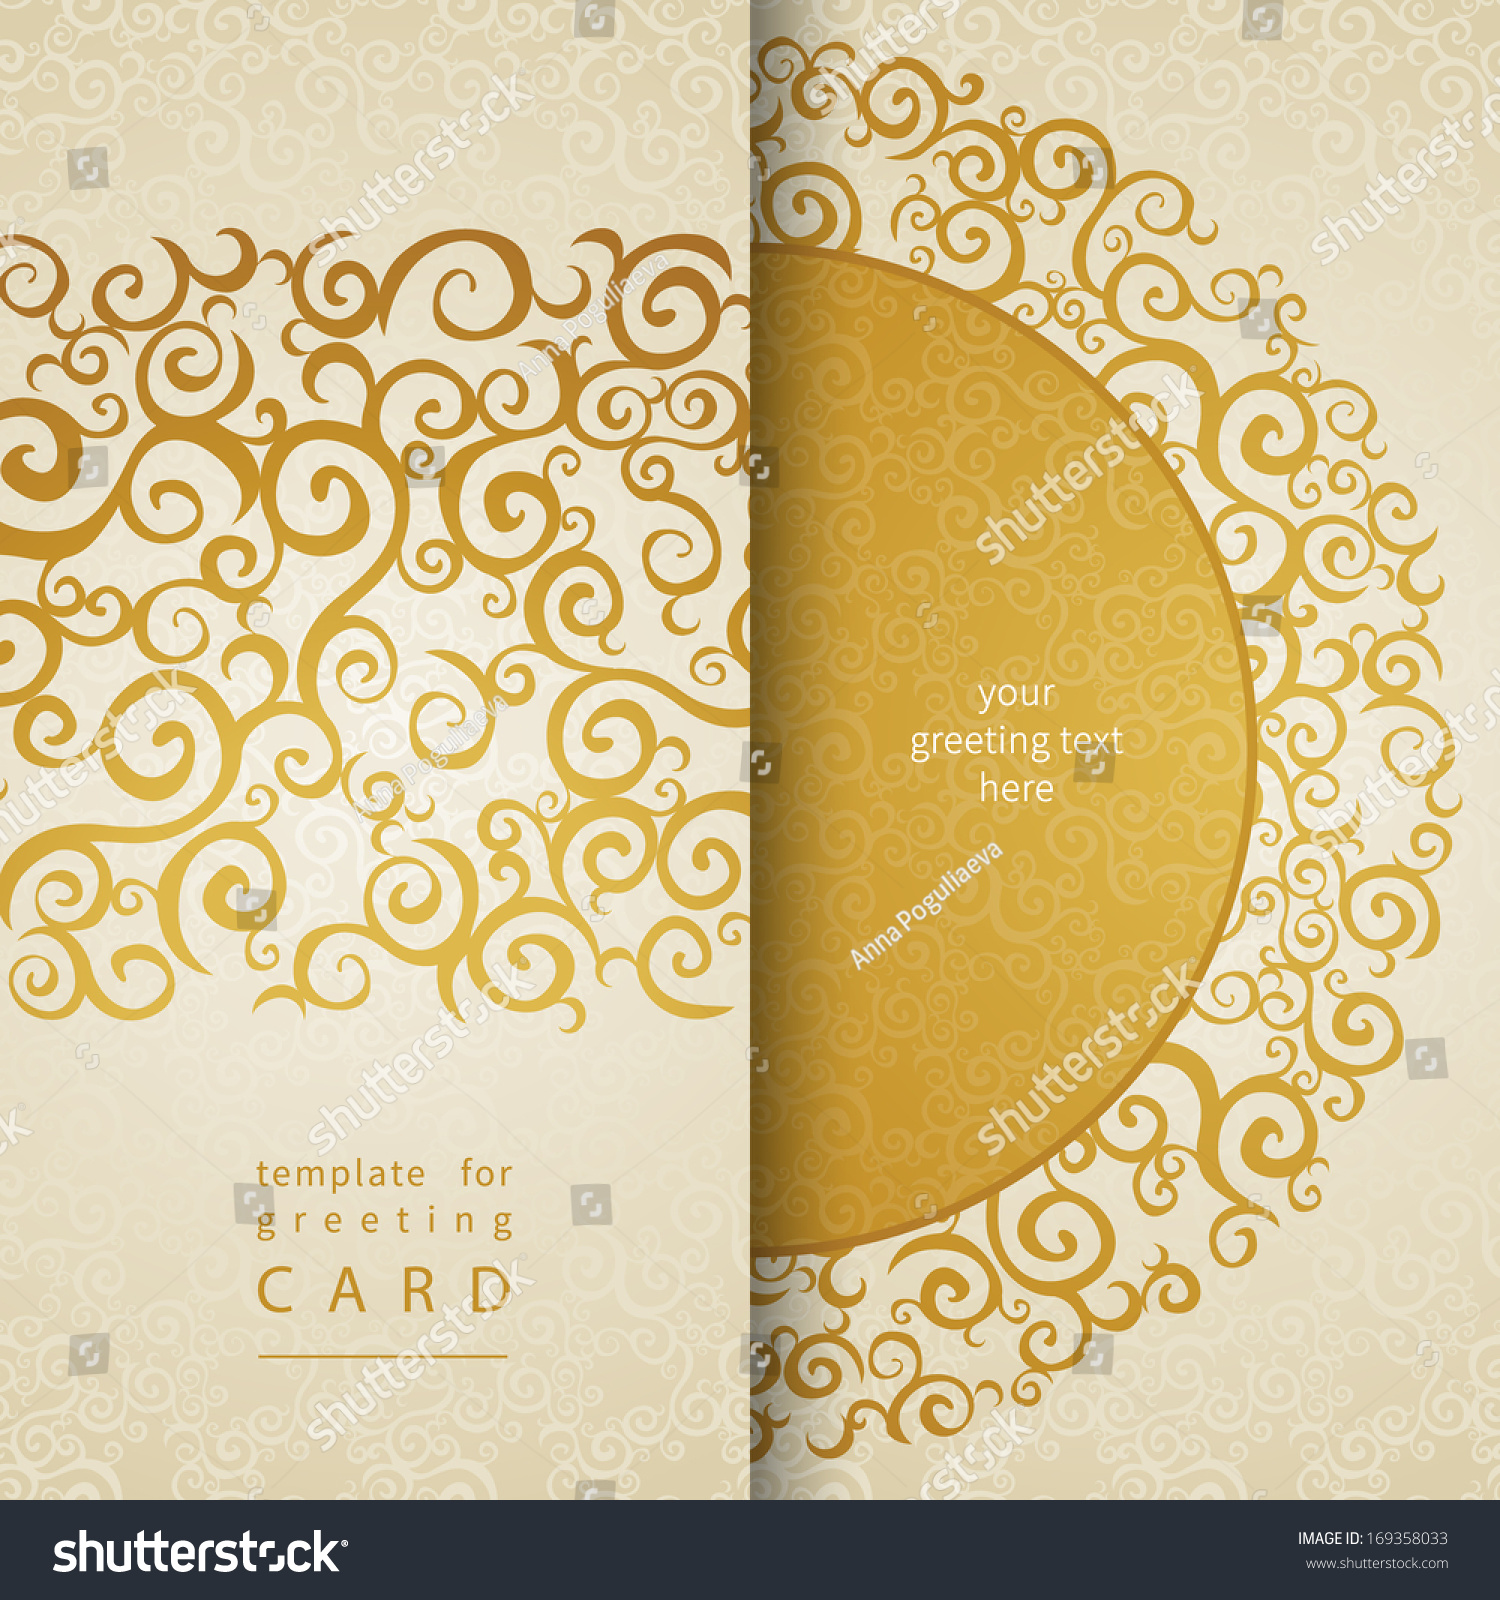 vintage invitation cards lace gold or nt stock vector  vintage invitation cards lace gold or nt golden curls template frame design for greeting